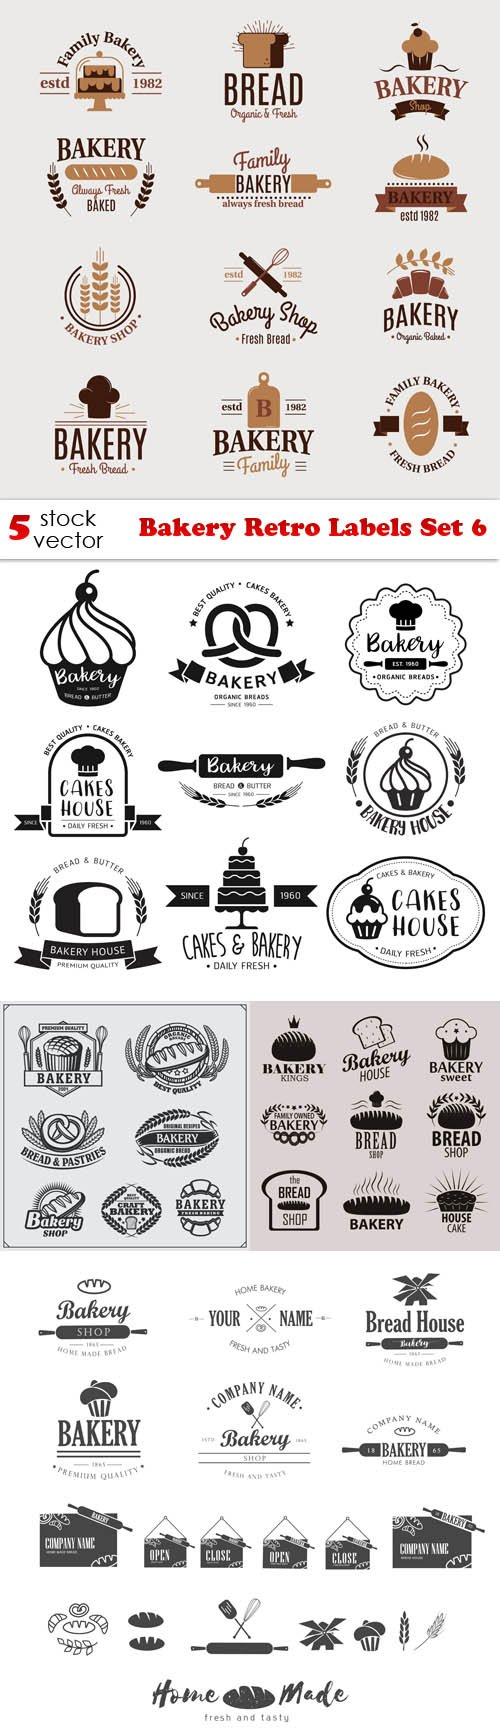 Vectors - Bakery Retro Labels Set 6